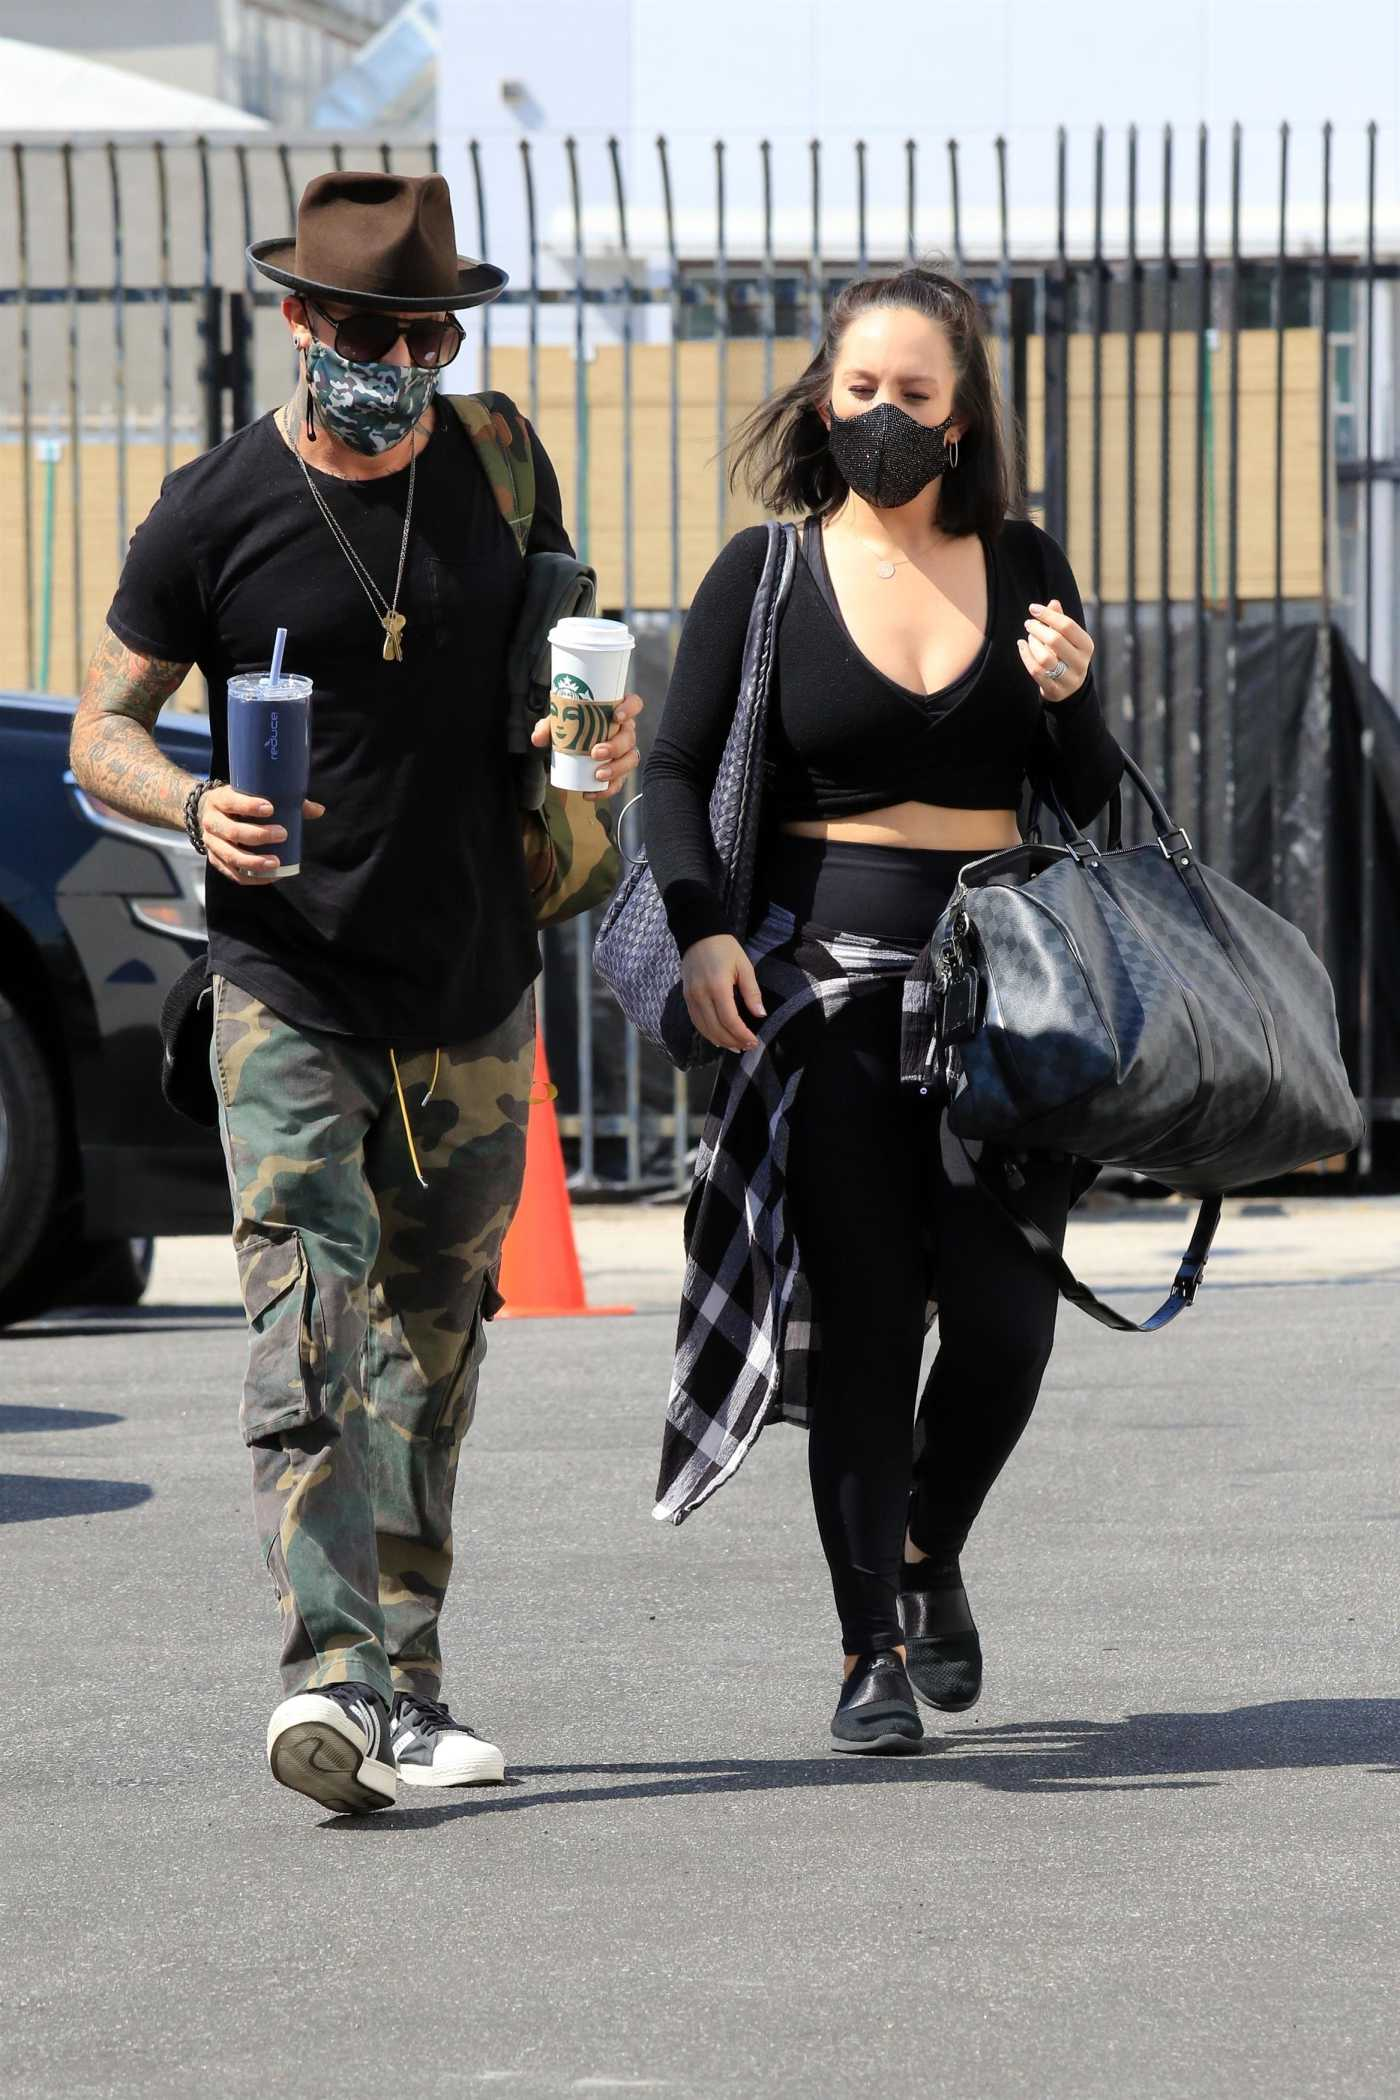 Cheryl Burke in a Black Outfit Out with AJ McLean Arrives at the DWTS Studio in Los Angeles 10/03/2020